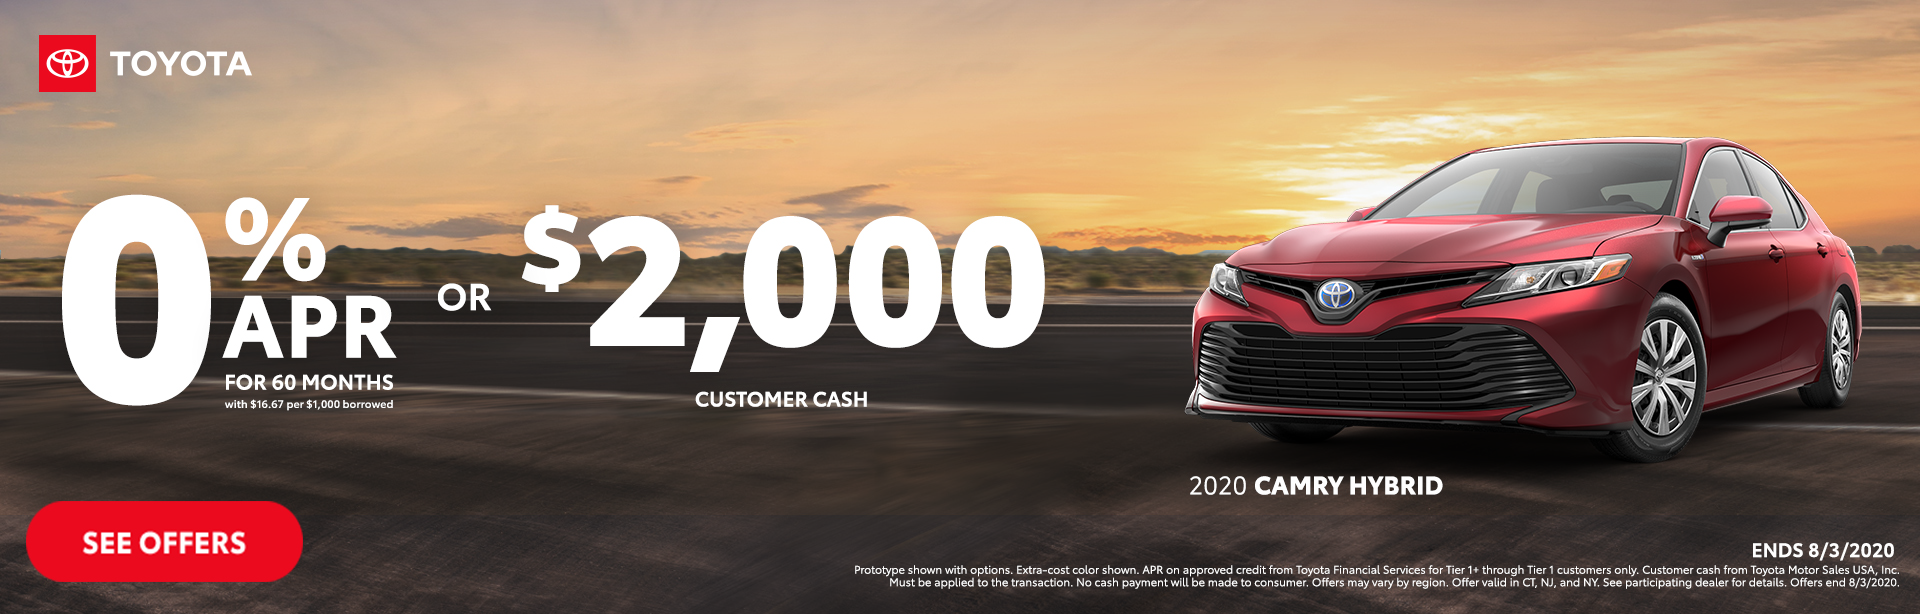 Camry Hybrid Offer